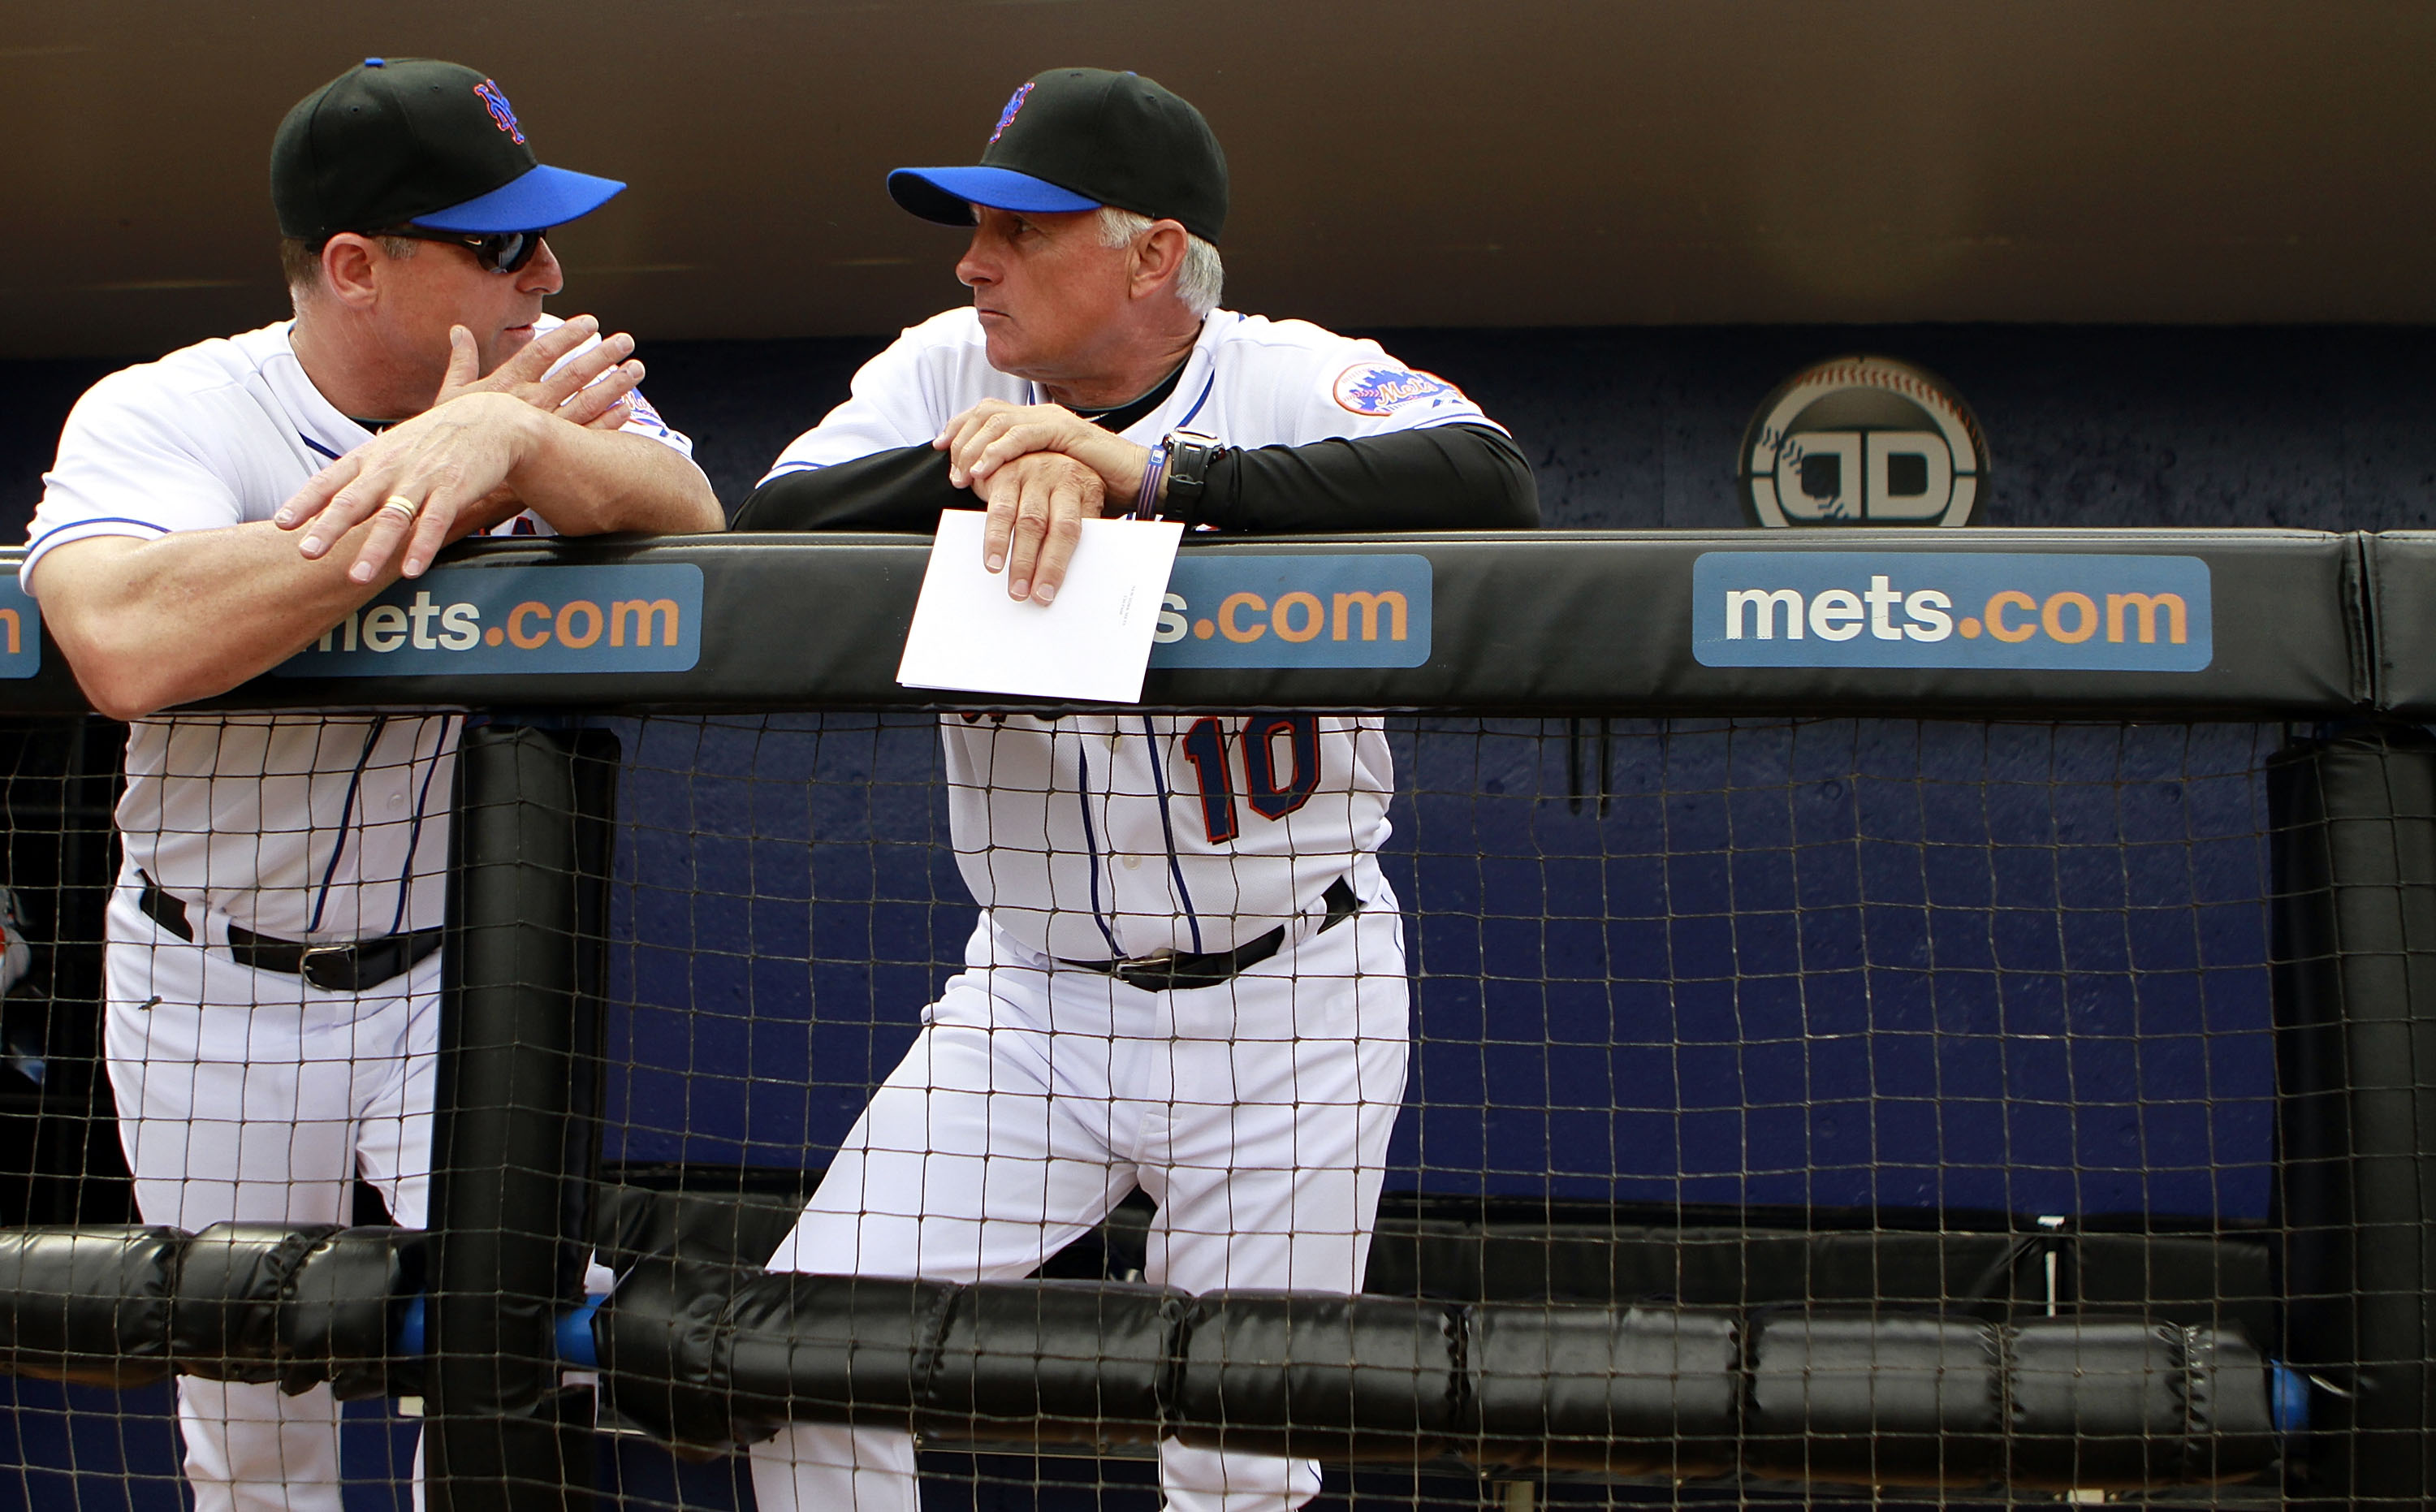 PORT ST. LUCIE, FL - FEBRUARY 26:  RY 26:  David Wright #5 and Manager Terry Collins (R) of the New York Mets chat prior to playing against the Atlanta Braves at Digital Domain Park on February 26, 2011 in Port St. Lucie, Florida.  (Photo by Marc Serota/G